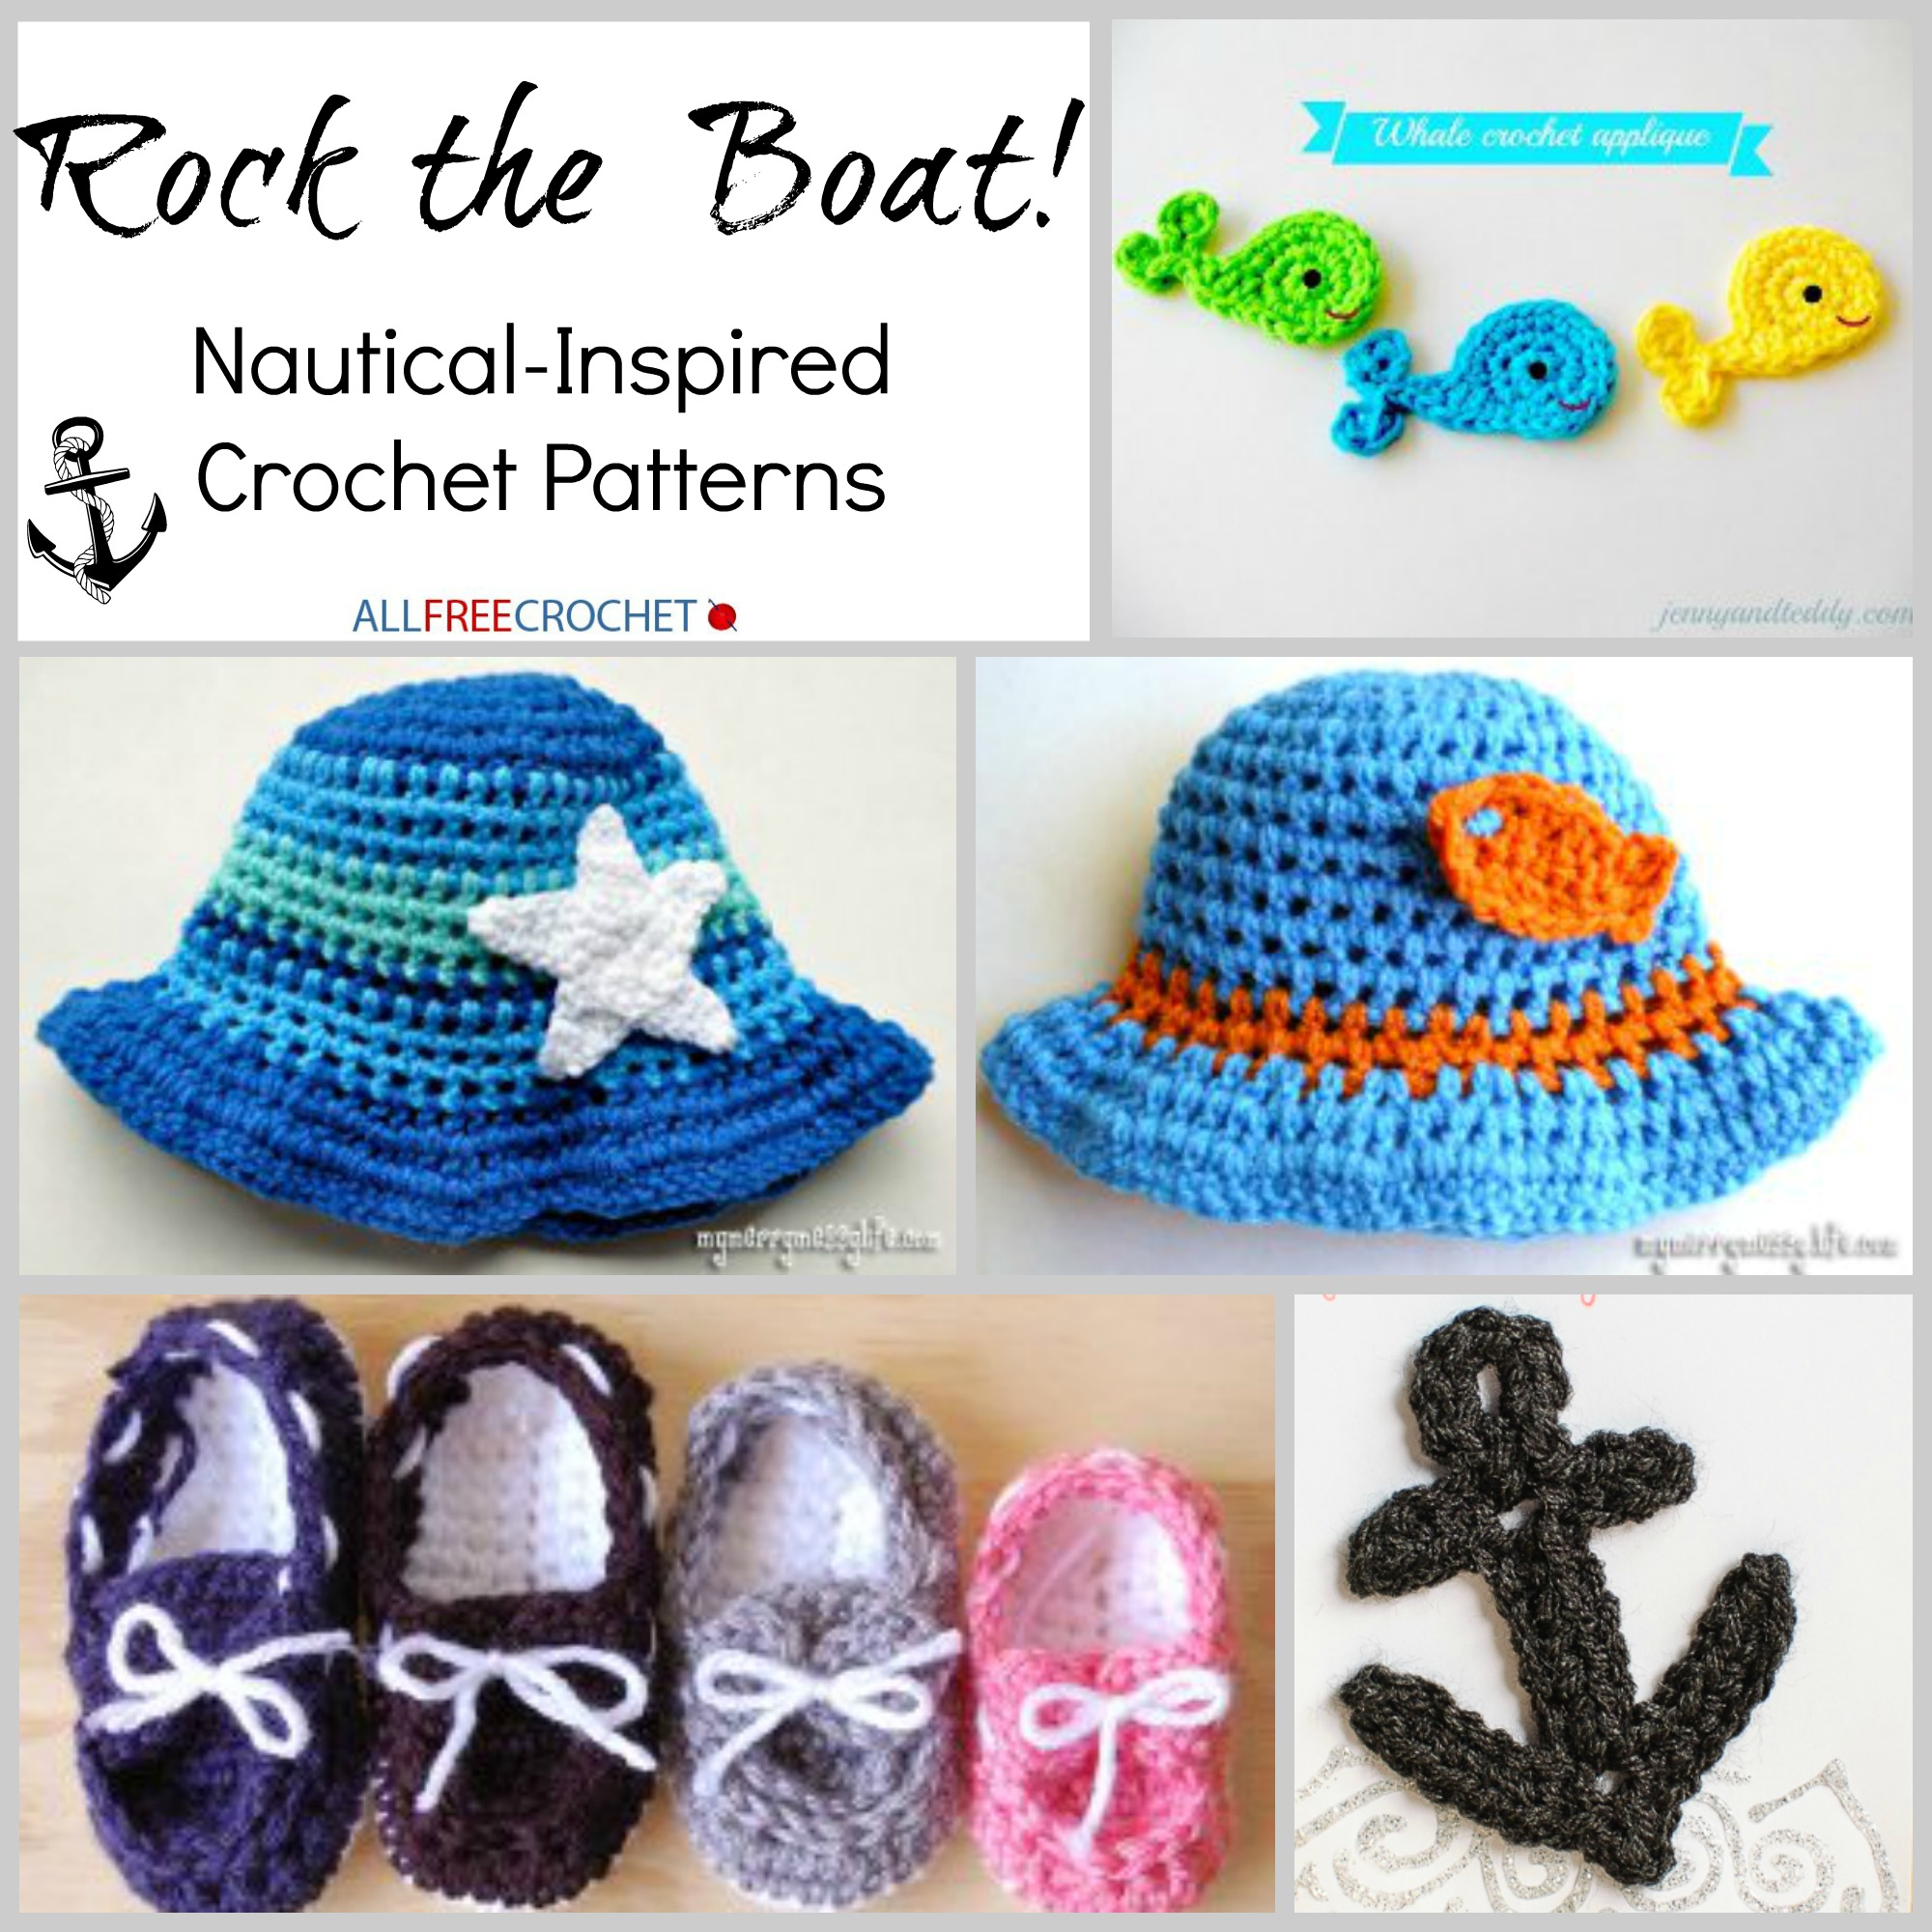 Rock The Boat 15 Nautical Inspired Crochet Patterns For Summer